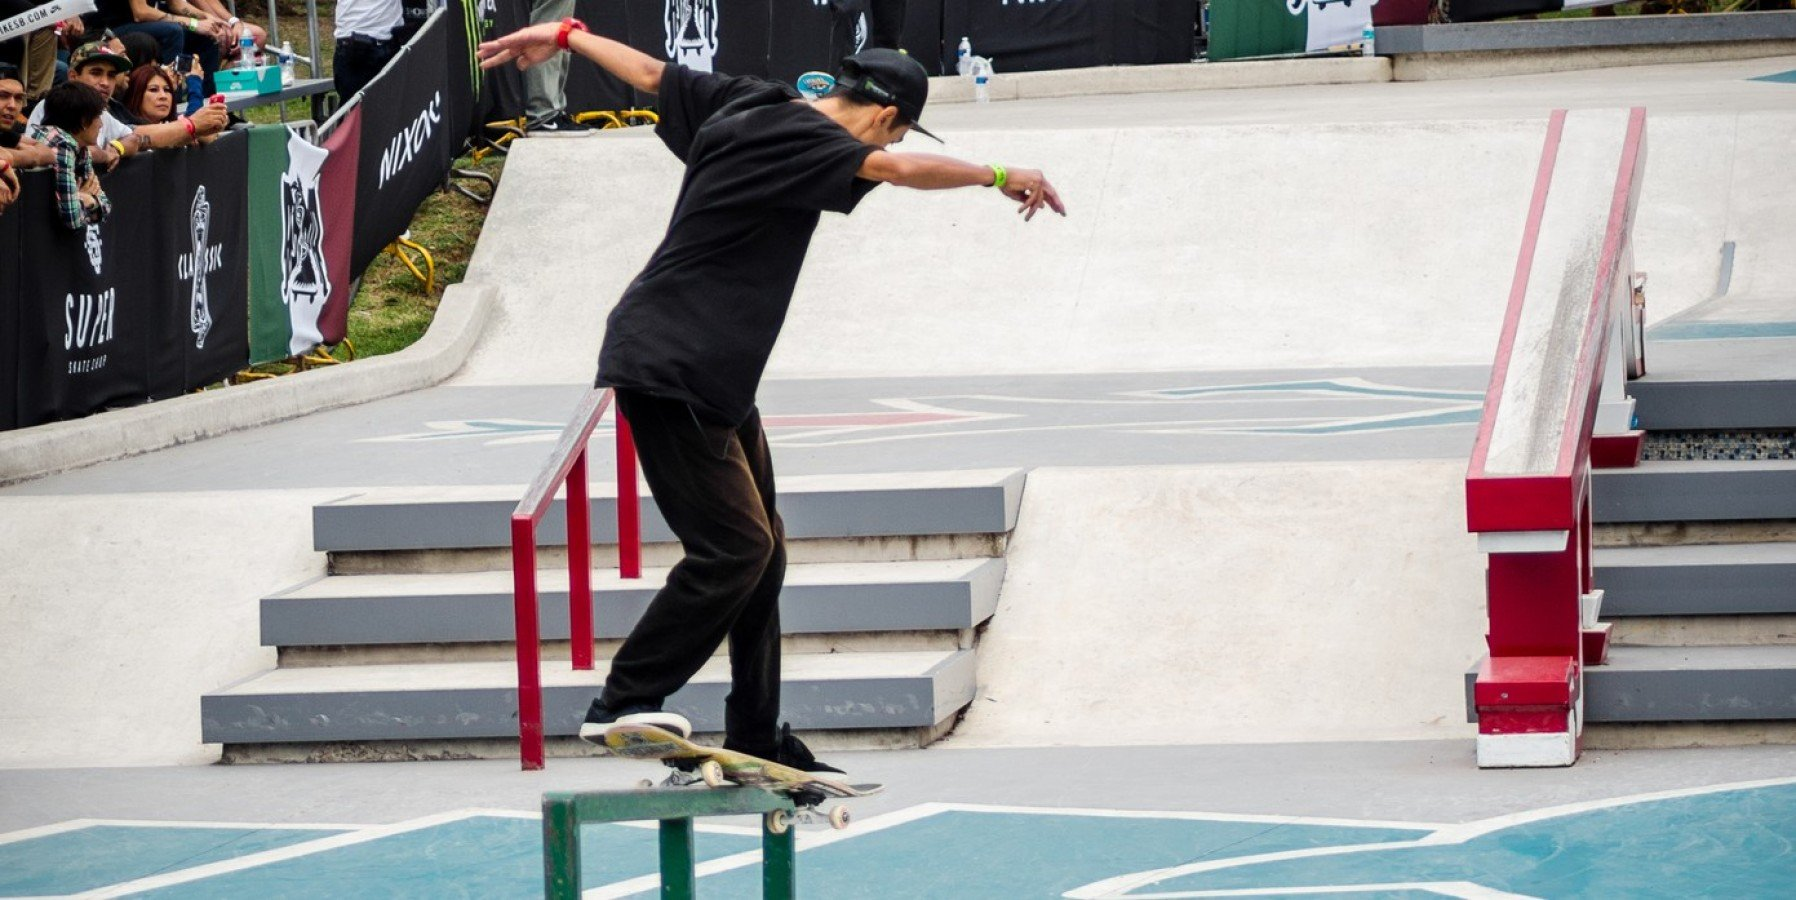 Monster Energy athlete in the best latin skate competition